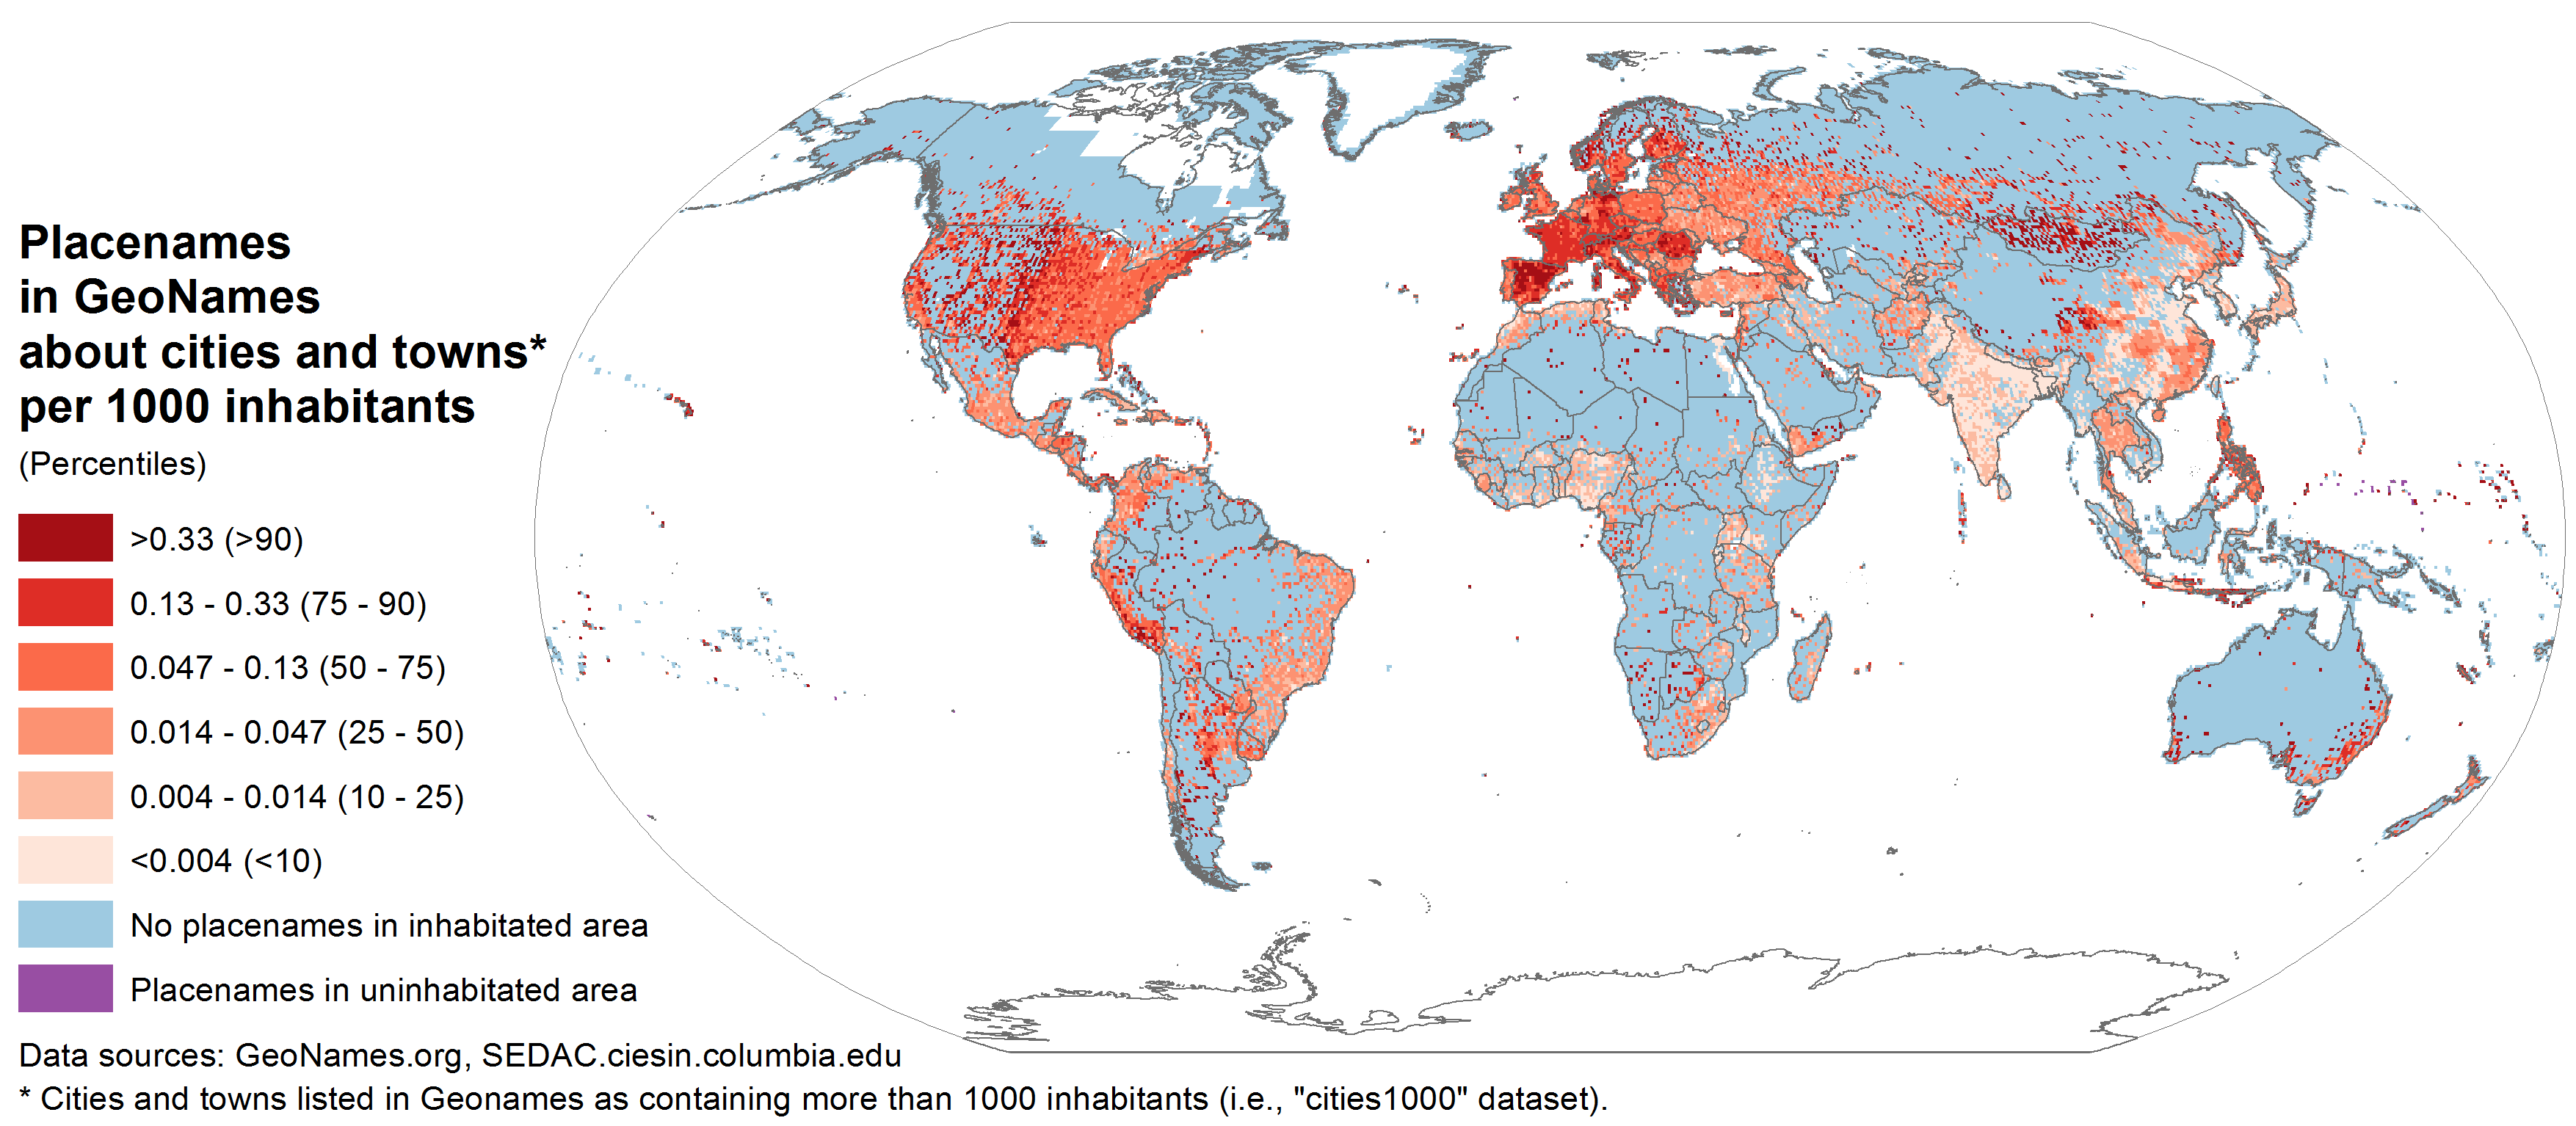 Spatial distibution of placenames in GeoNames included in the dataset of populated places with more than a thousand inhabitants, compared to the spatial distribution of population